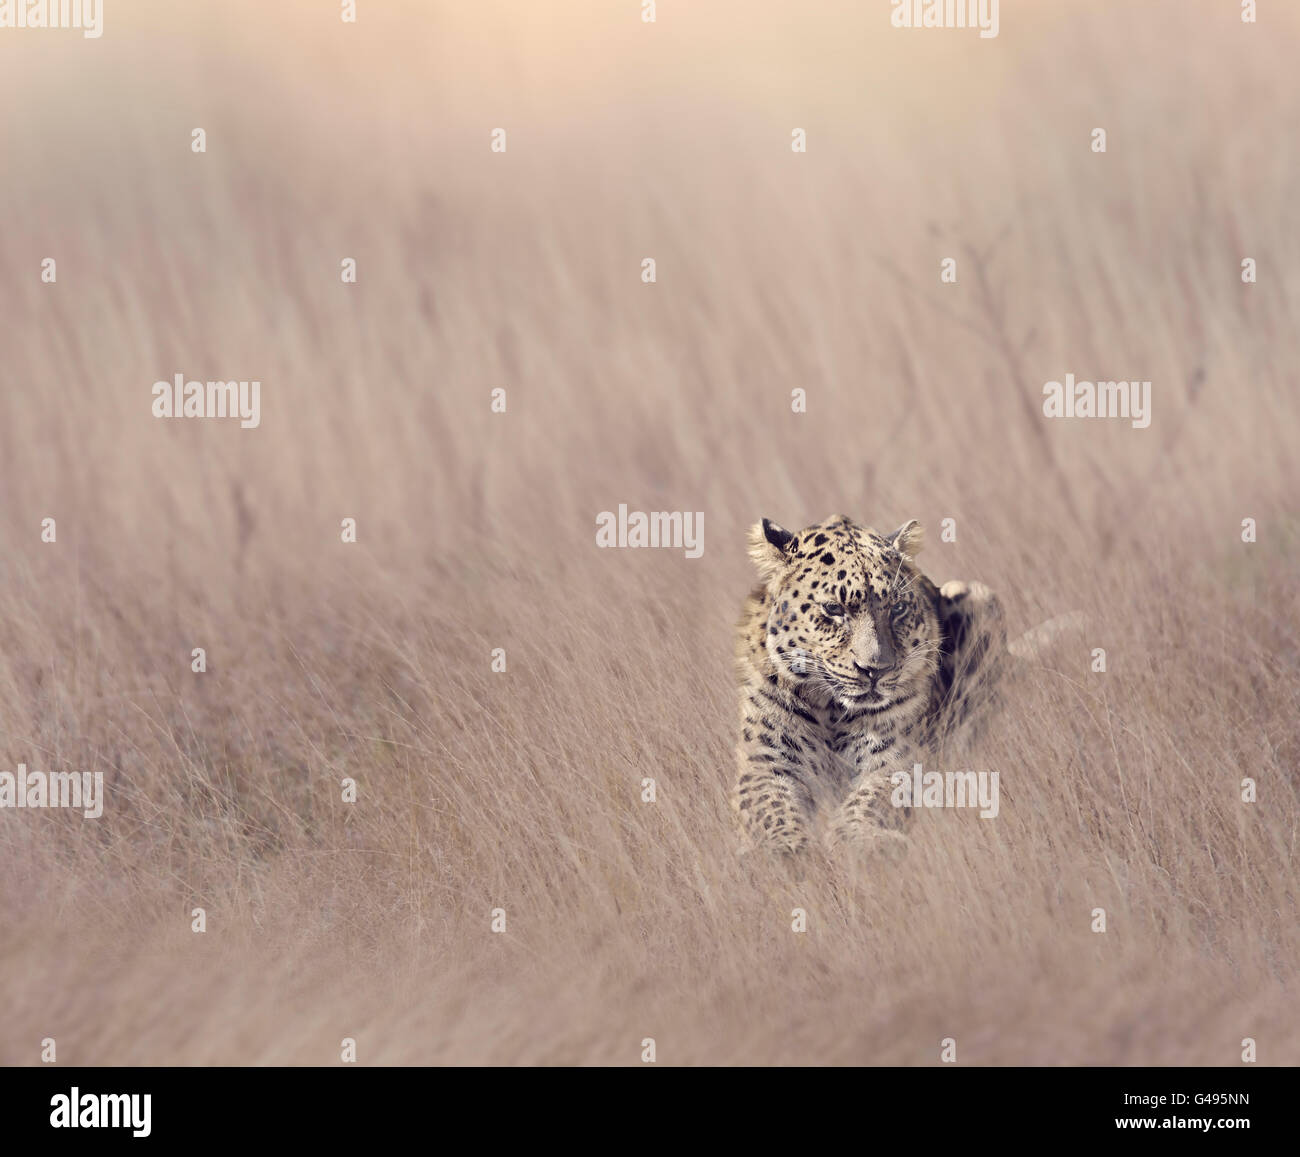 Leopard Resting in Tall Grass - Stock Image